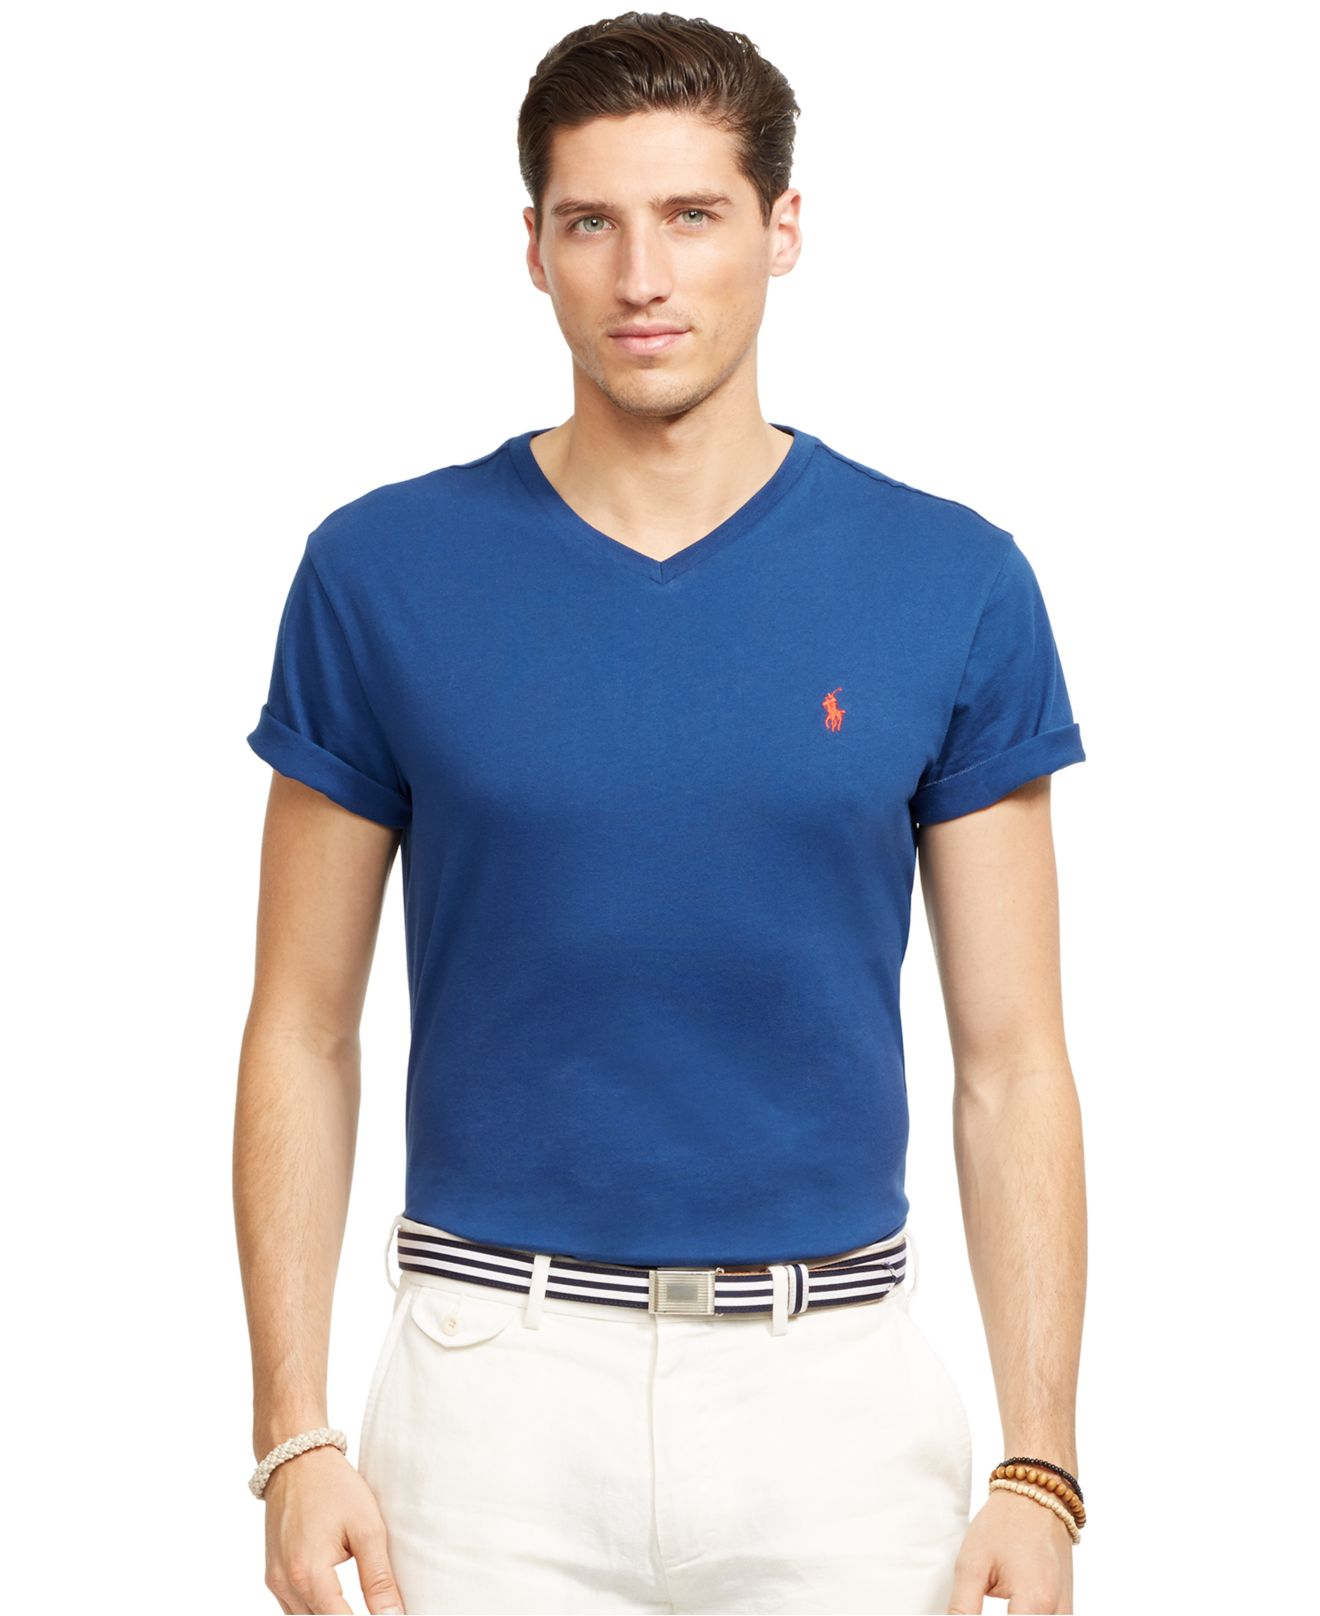 Shop t-shirts for men online at truexfilepv.cf, find latest styles of cheap cool v-neck, polo and graphic t-shirts and tees at discount price. Page 2.